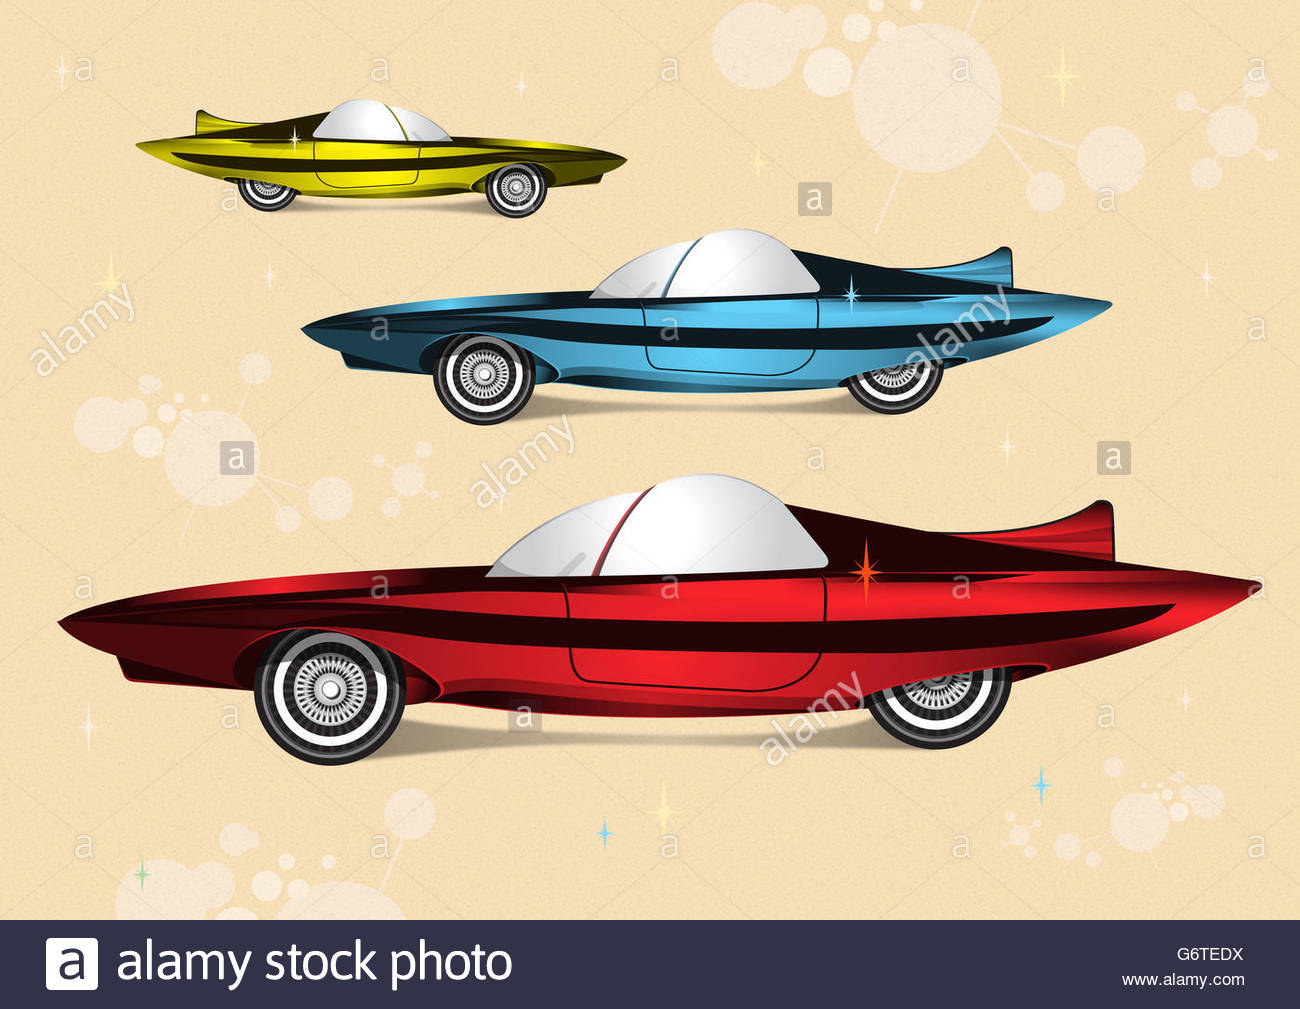 Futuristic super car mid century illustration - Stock Image